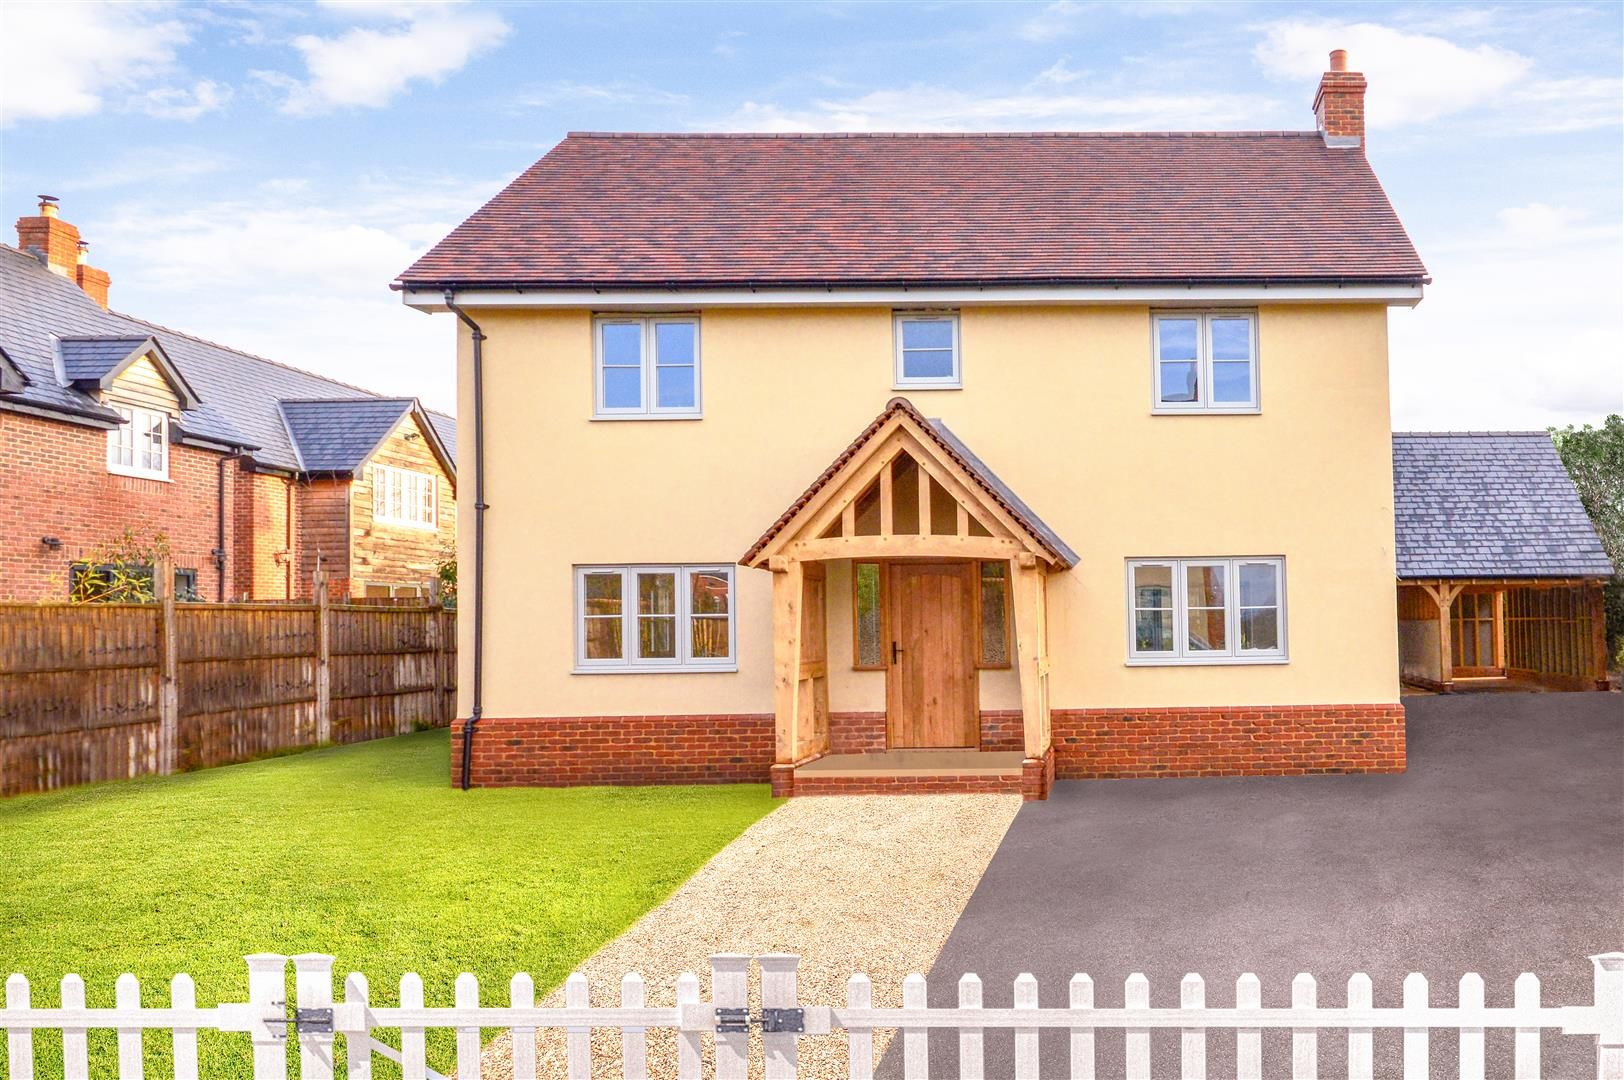 3 bed detached for sale in Marden 1